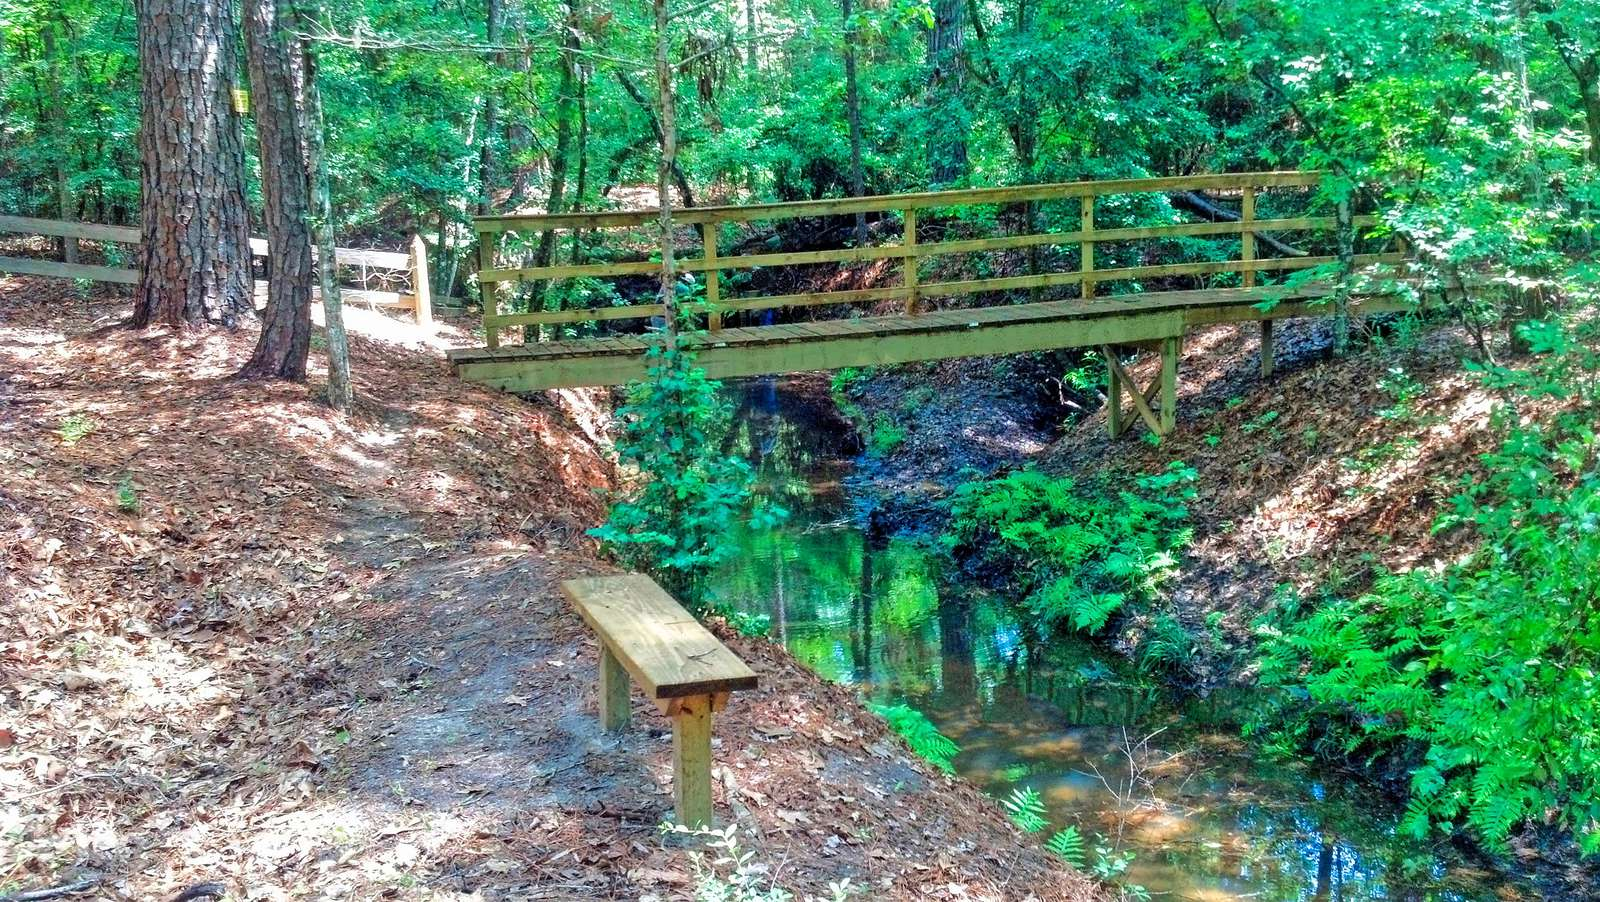 As we get down the hill to the creek we come upon the bridge. Cross it and take the dirt road right for a walk or left to get to the lake. Let's check out the lake